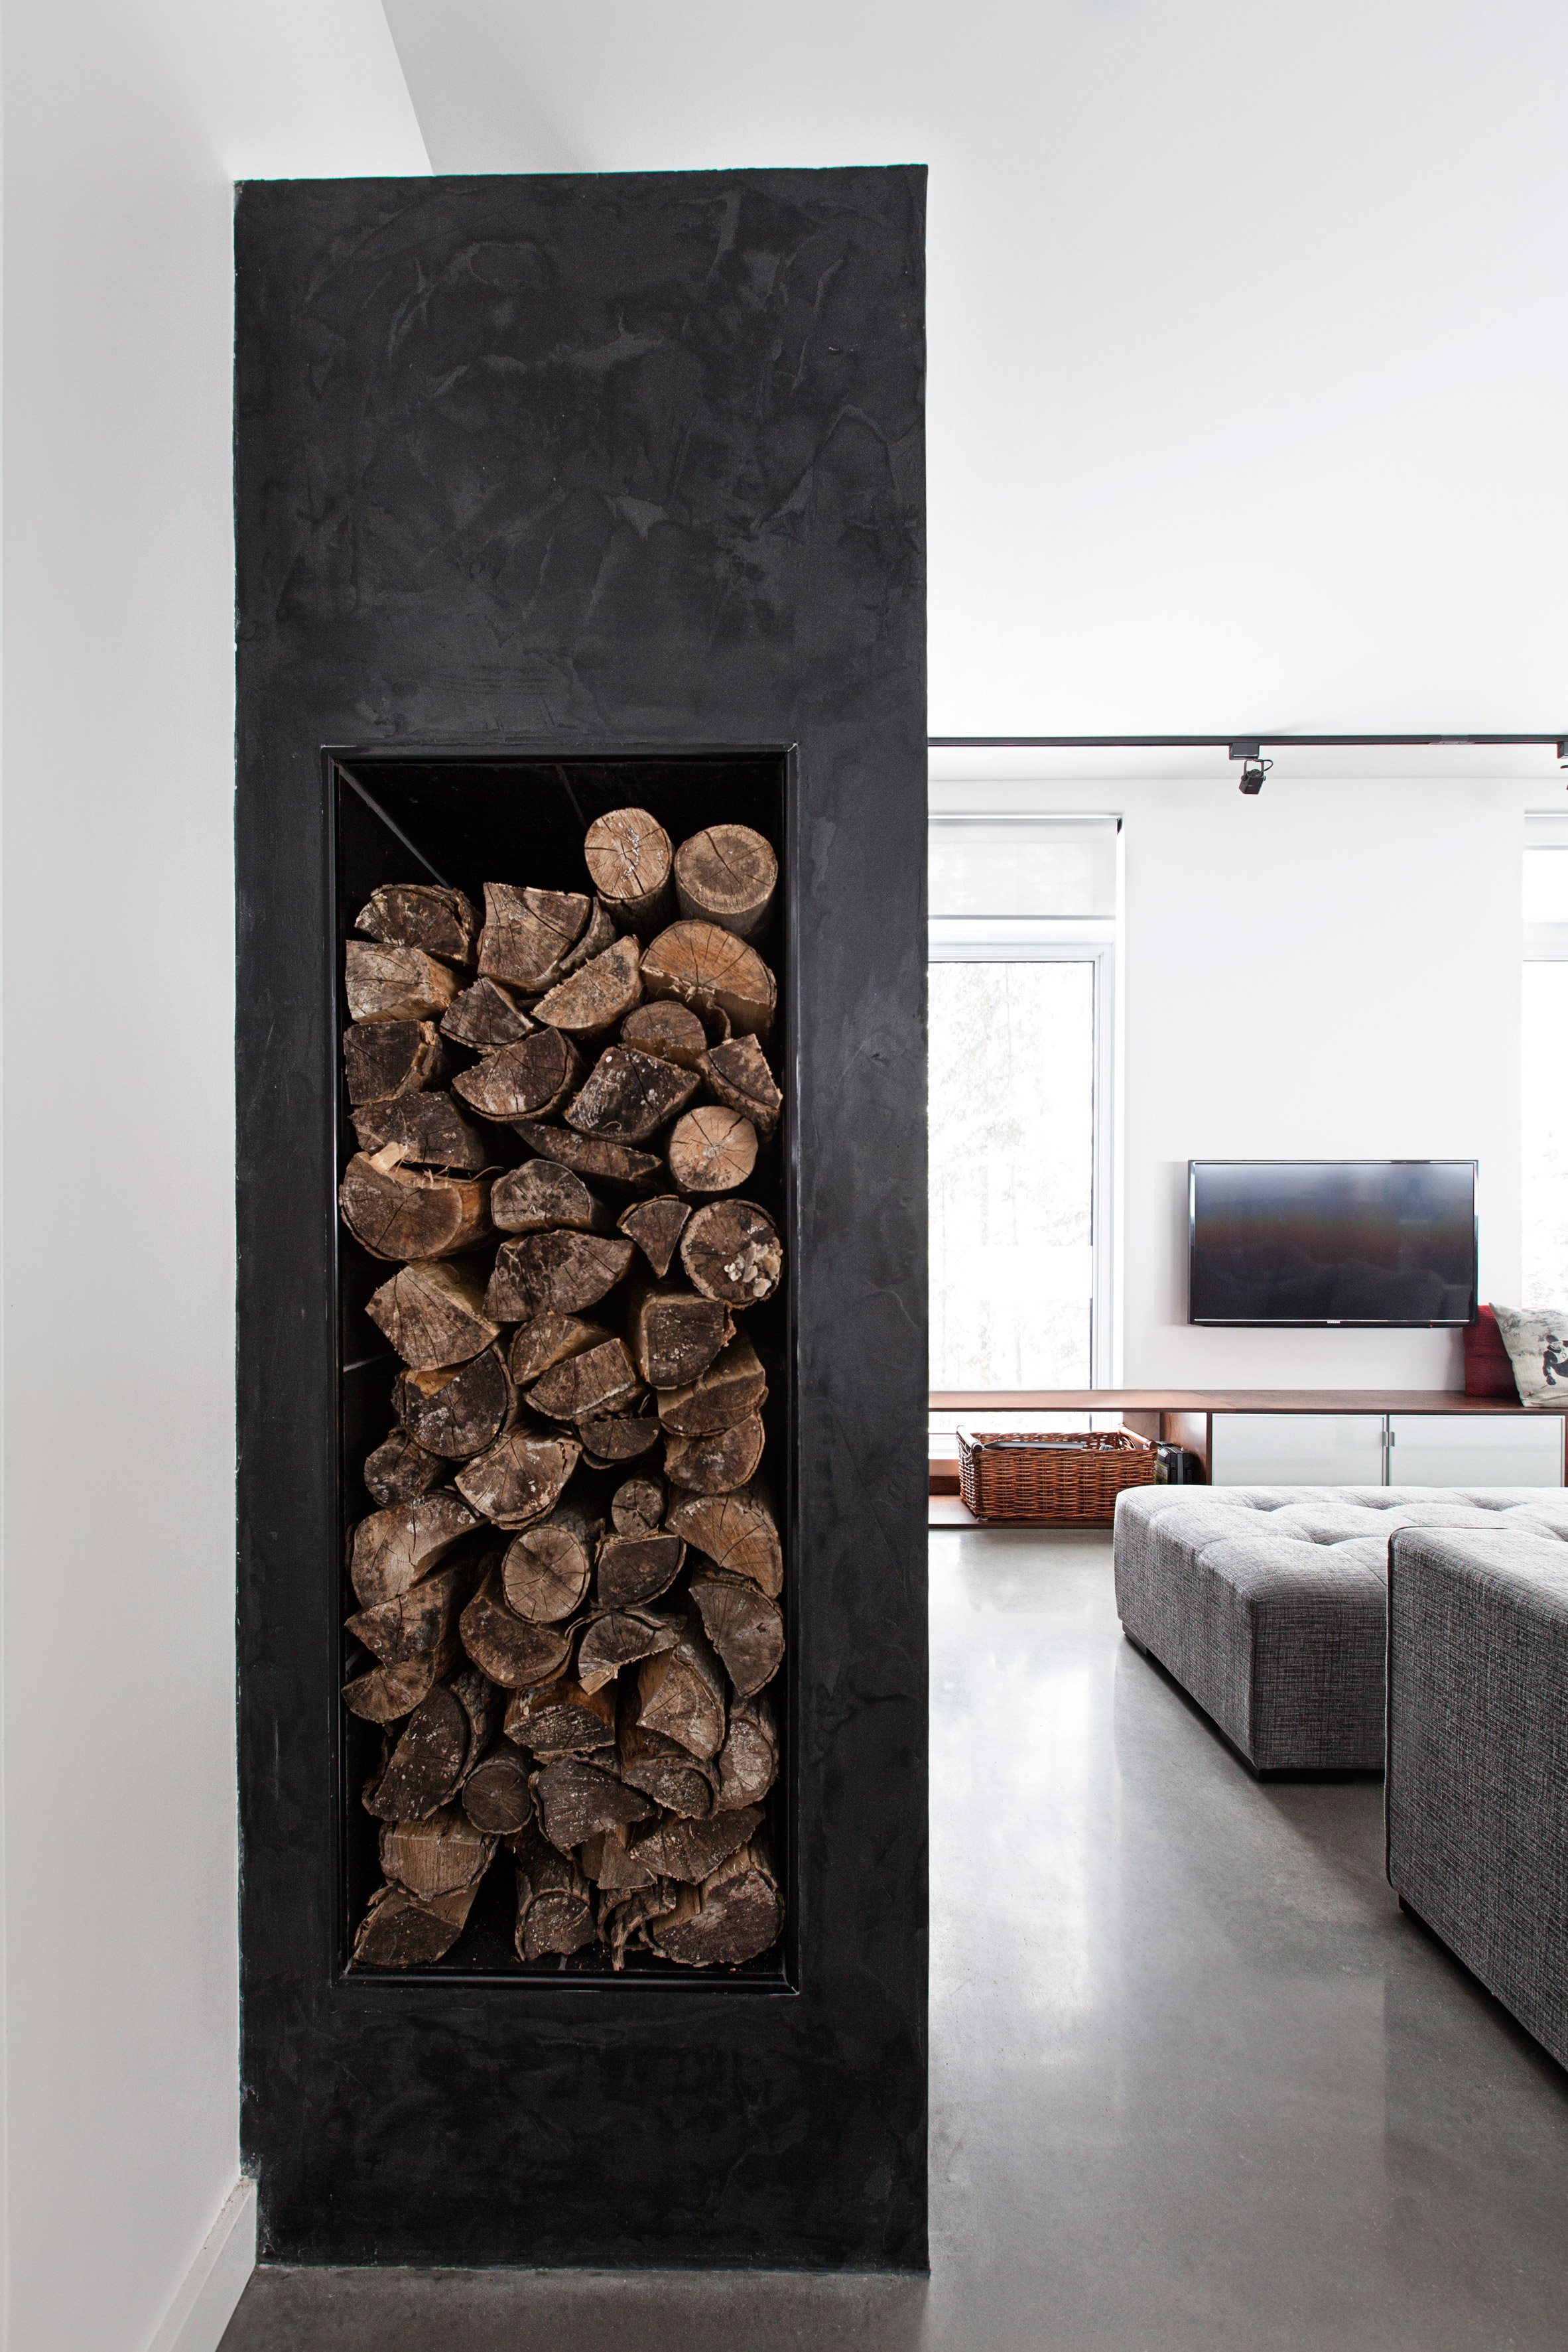 Black concrete fireplace warms Quebec ski lodge by DKA Architects and Kl.tz Design